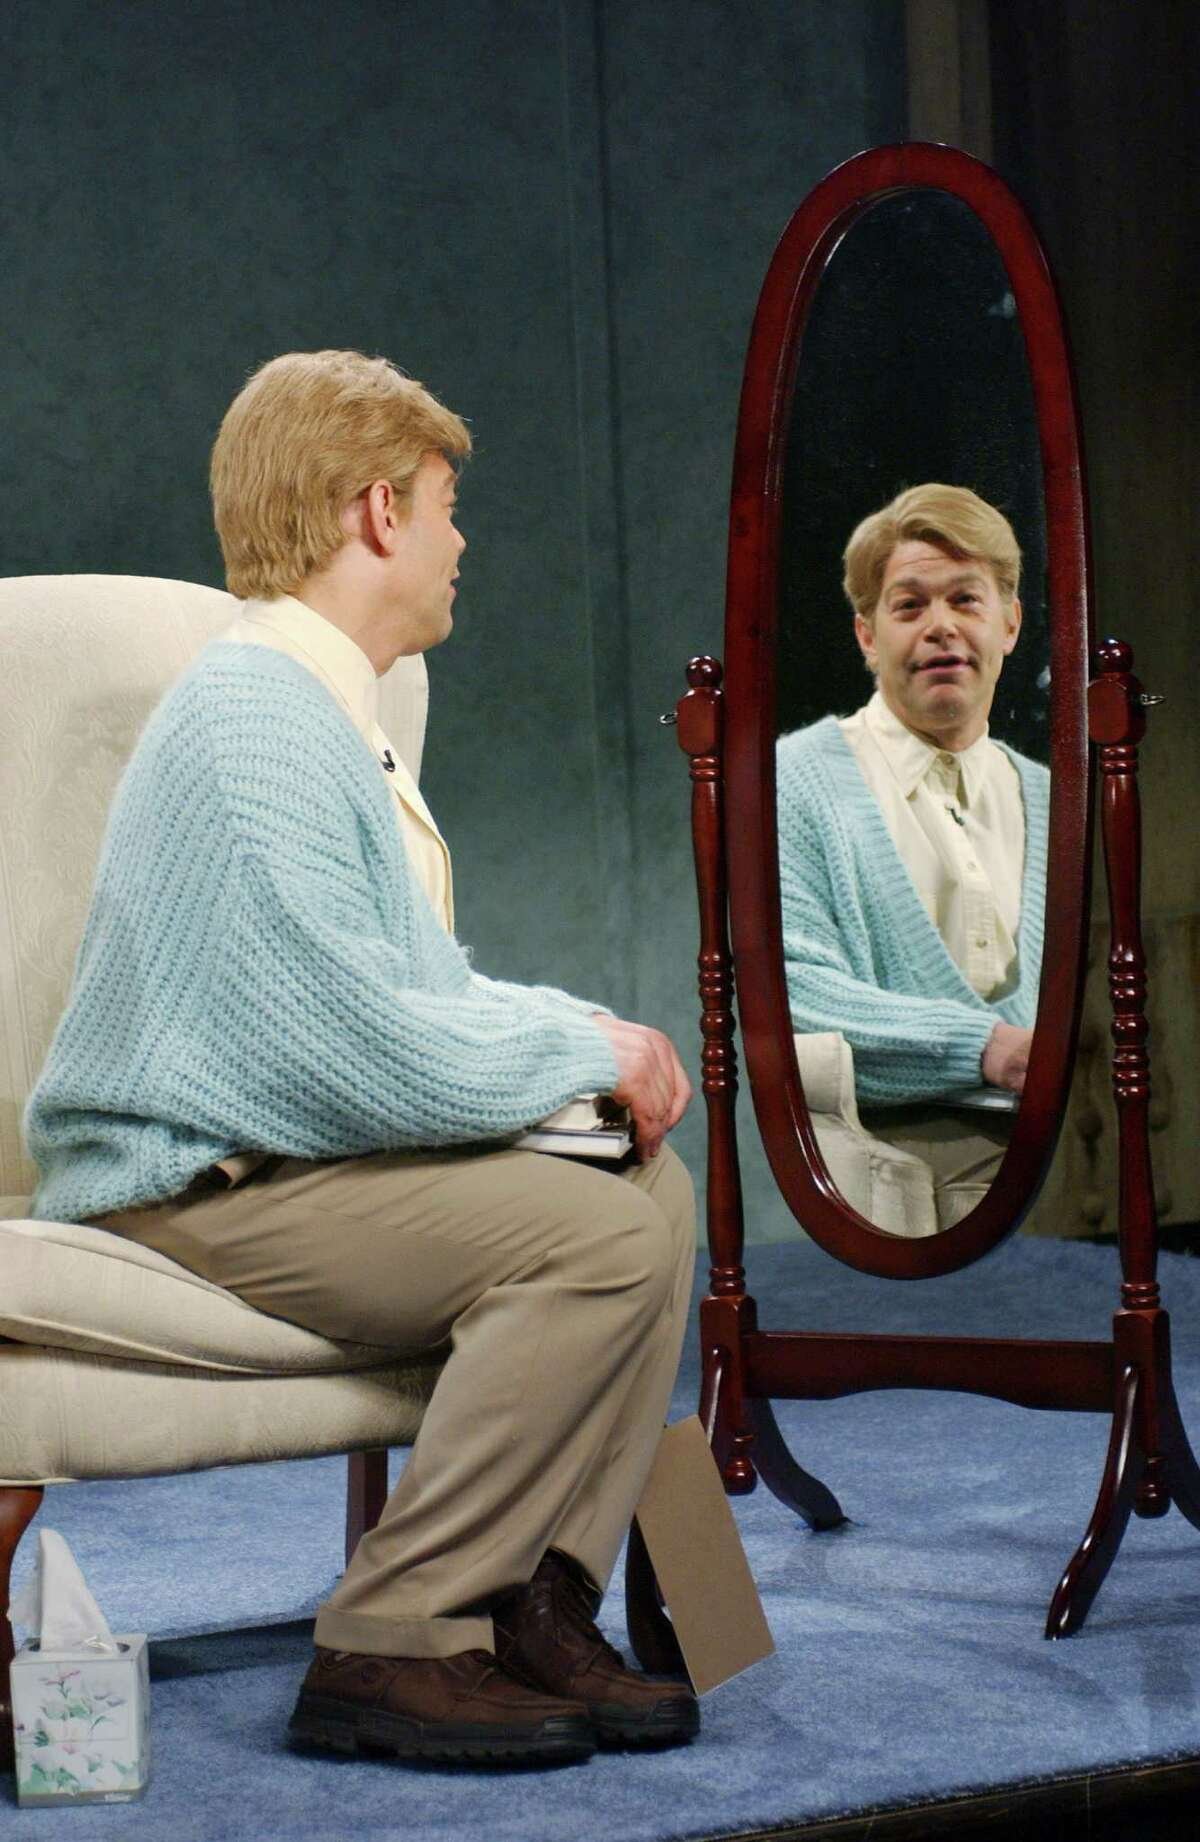 """""""Because I'm good enough, smart enough, and, doggone it, people like me!"""" - Stuart Smalley on """"Saturday Night Live."""" PHOTO: Stuart (Al Franken) during a """"Daily Affirmation"""" skit on Dec. 14, 2002."""